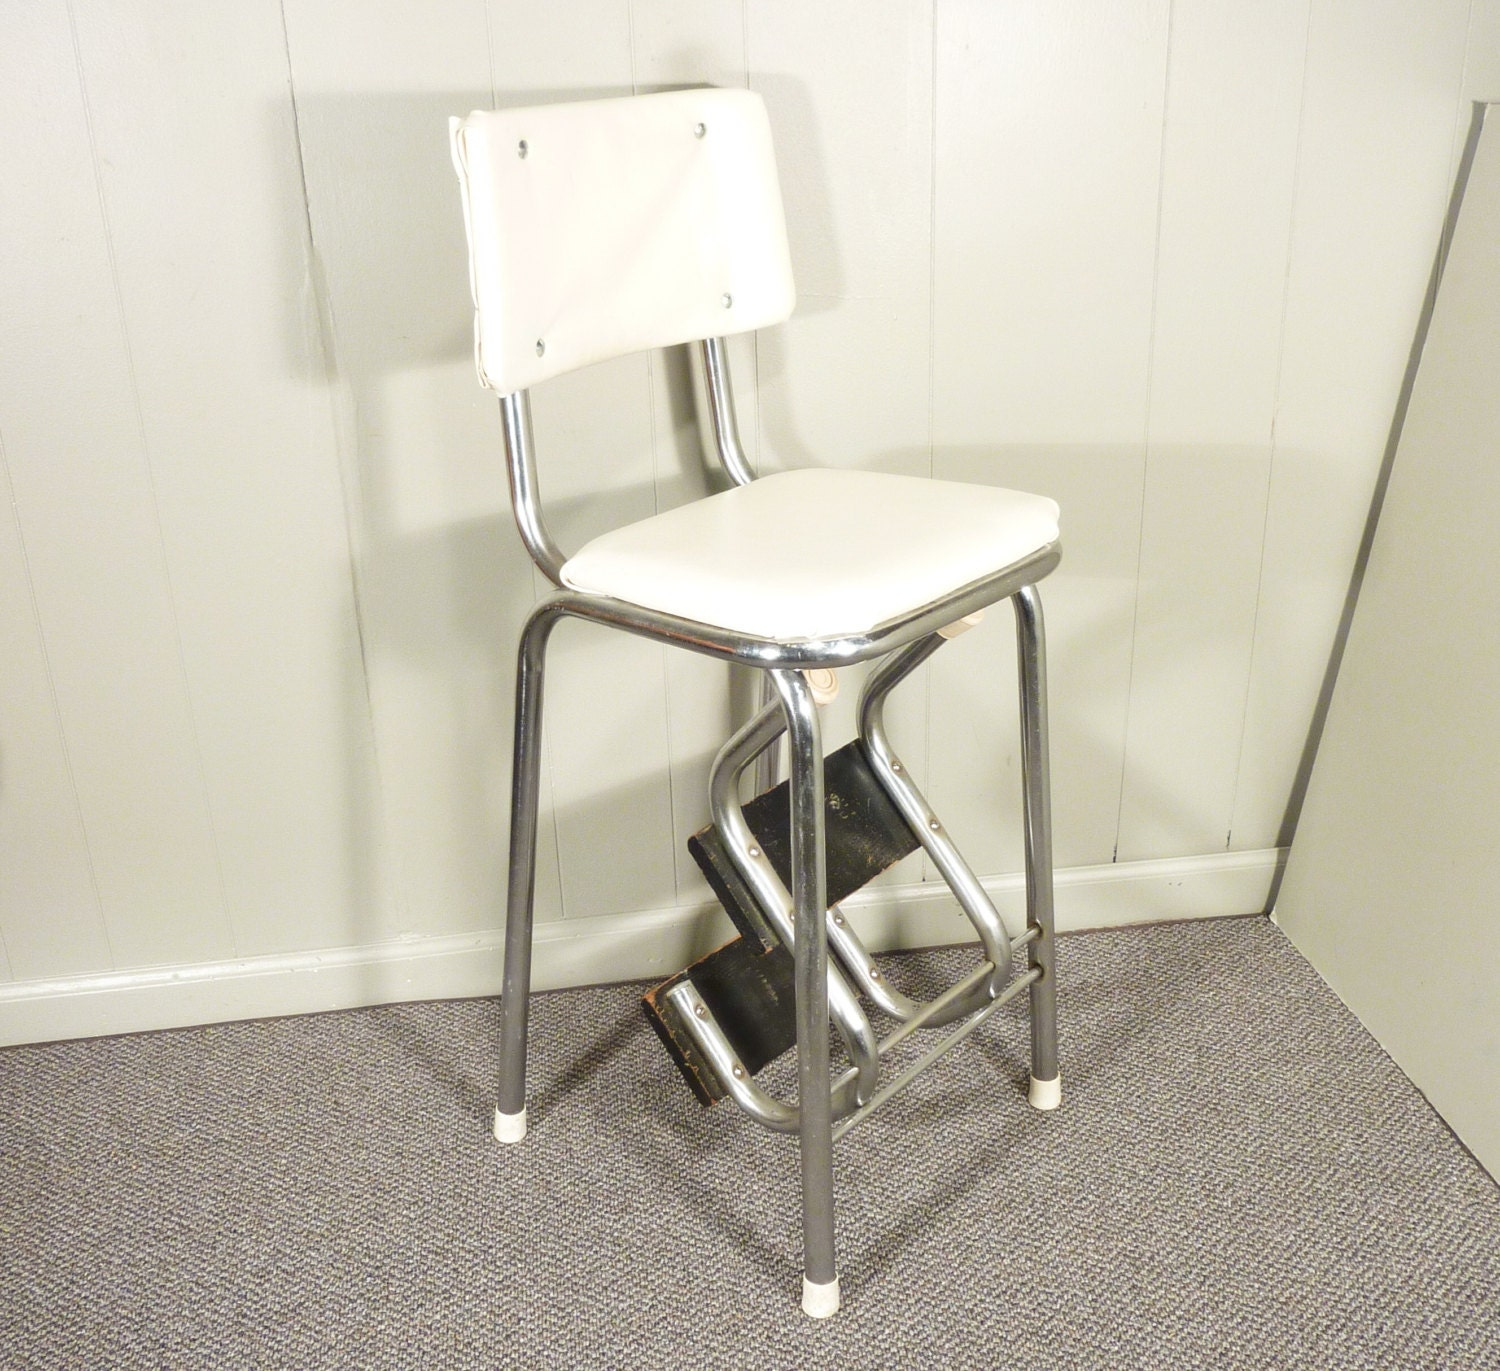 retro 50s vintage step stool kitchen stool chair : ilfullxfull556222882jnch from www.etsy.com size 1500 x 1371 jpeg 430kB